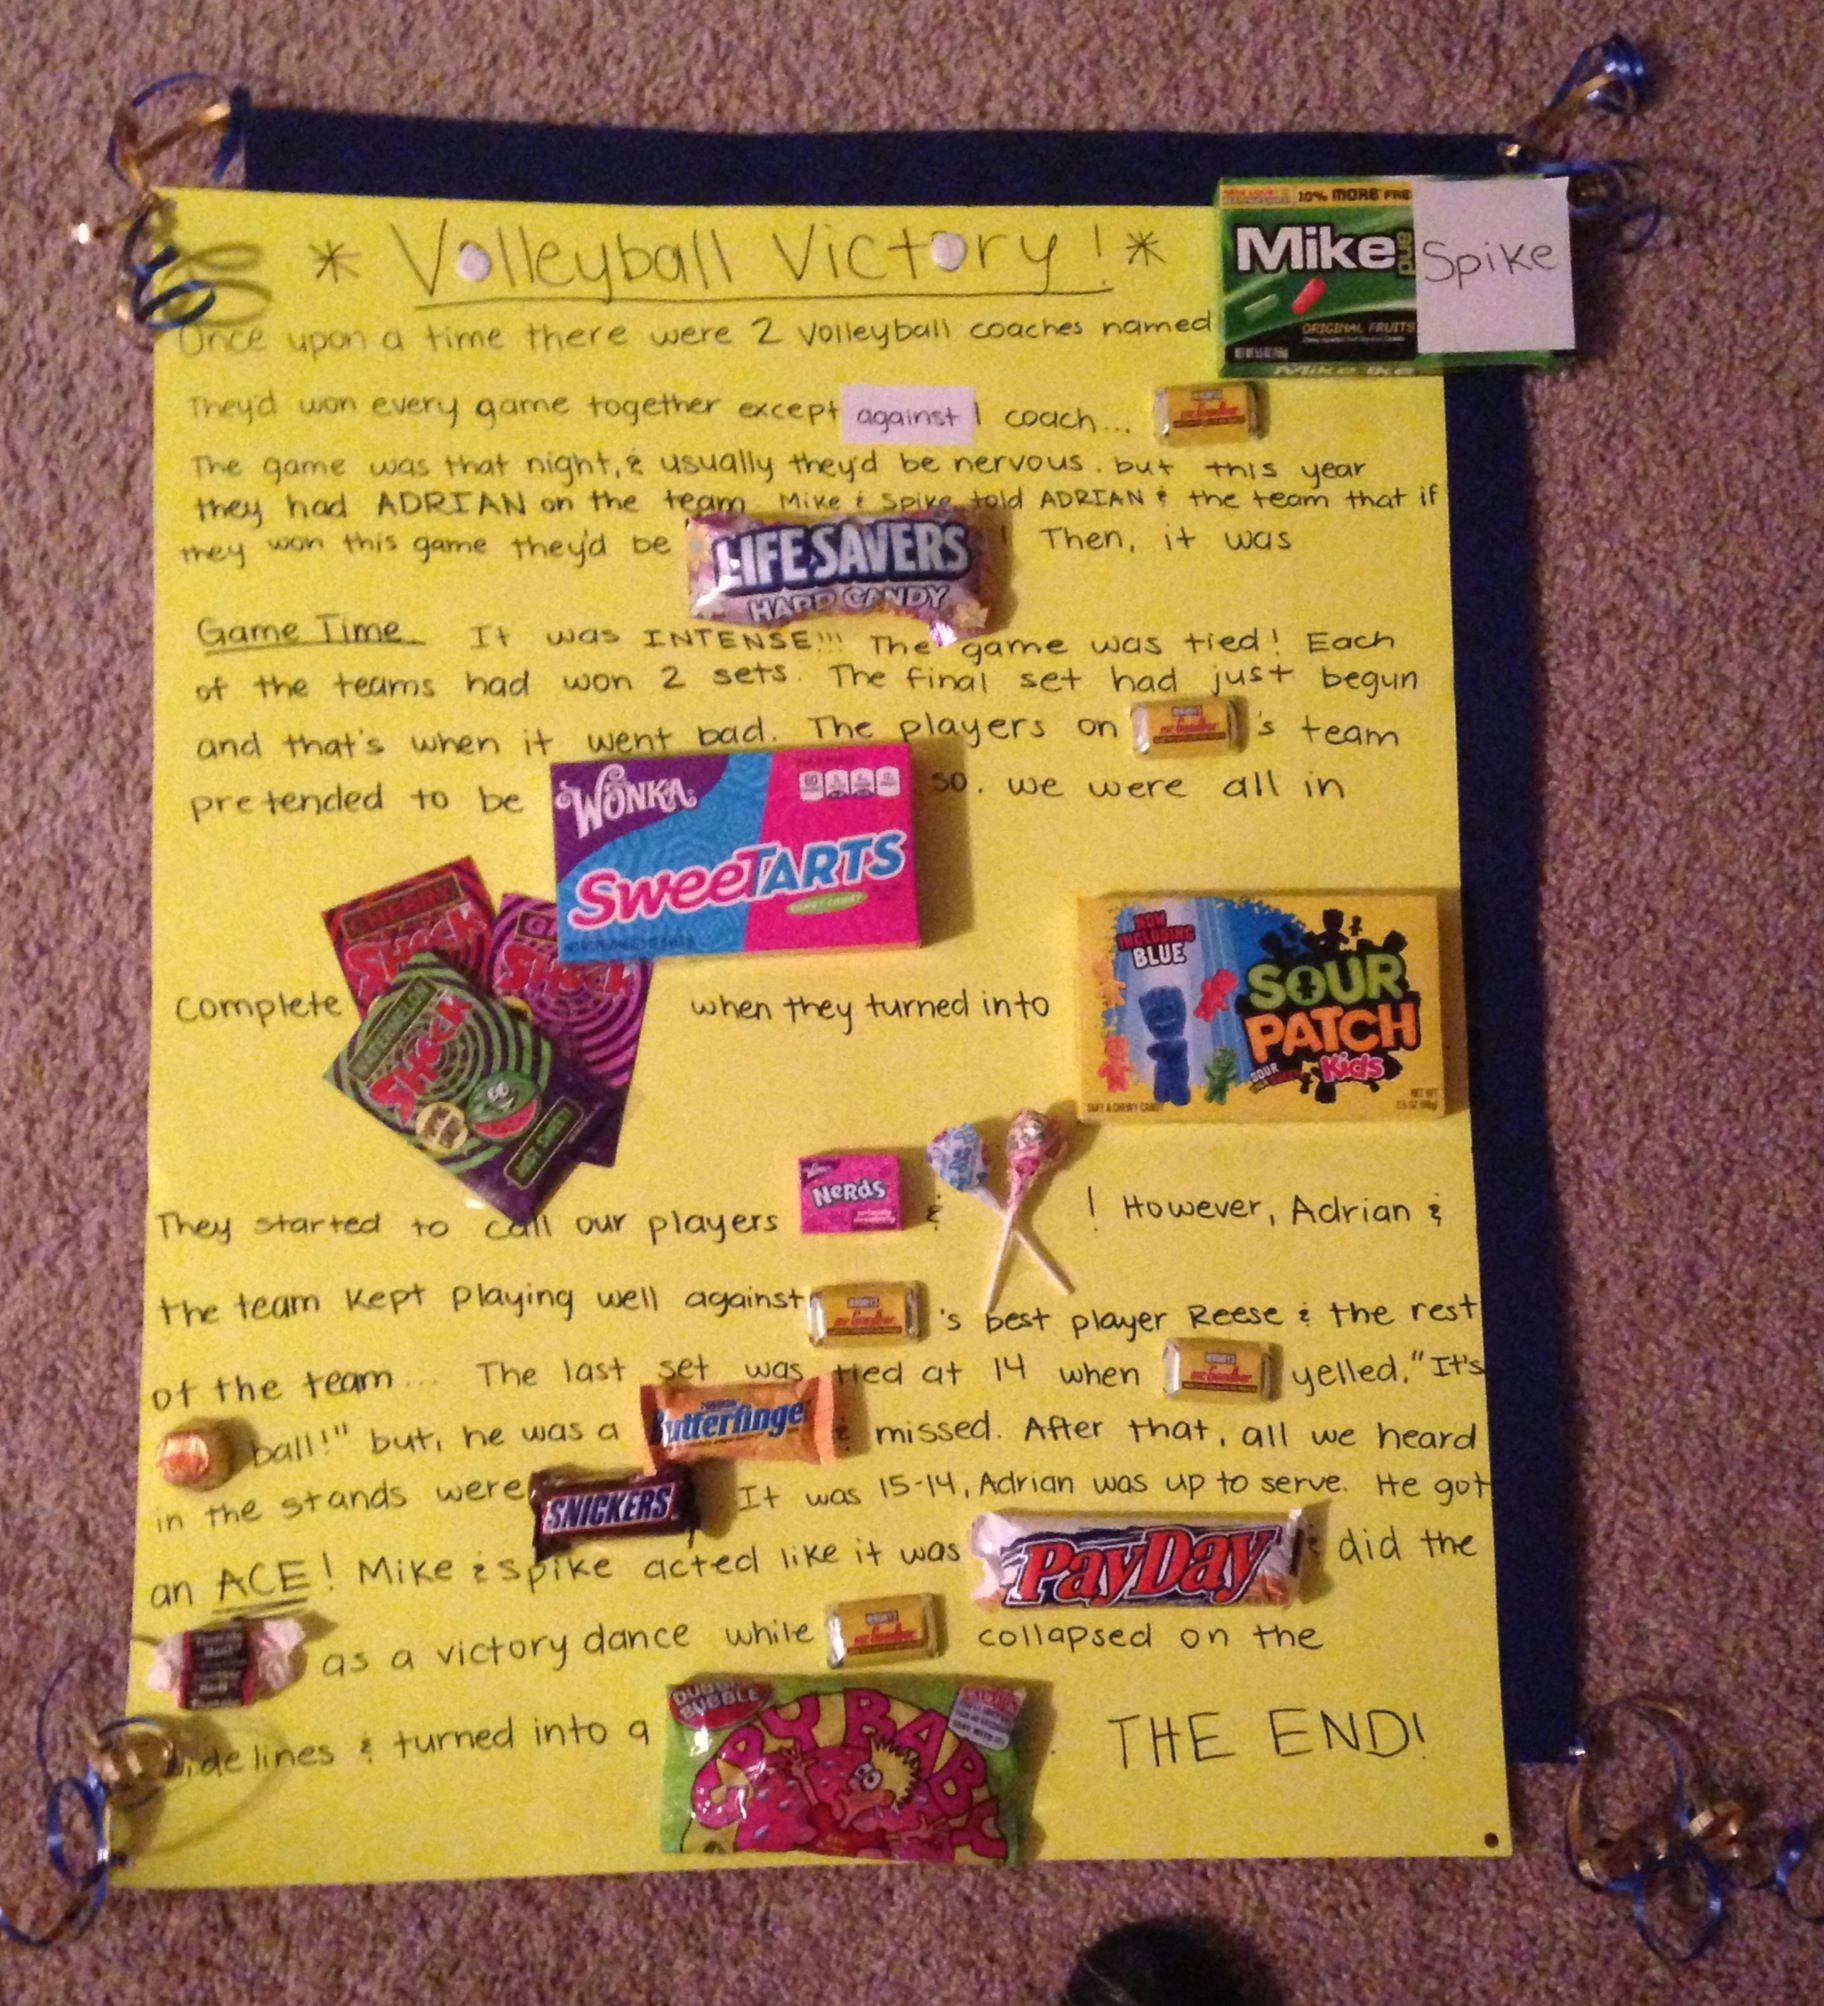 Volleyball Gift Ideas For Senior Night 22 Sensational Candy Board Completely Made Up Story Volleyball Senior Night Volleyball Gifts Senior Night